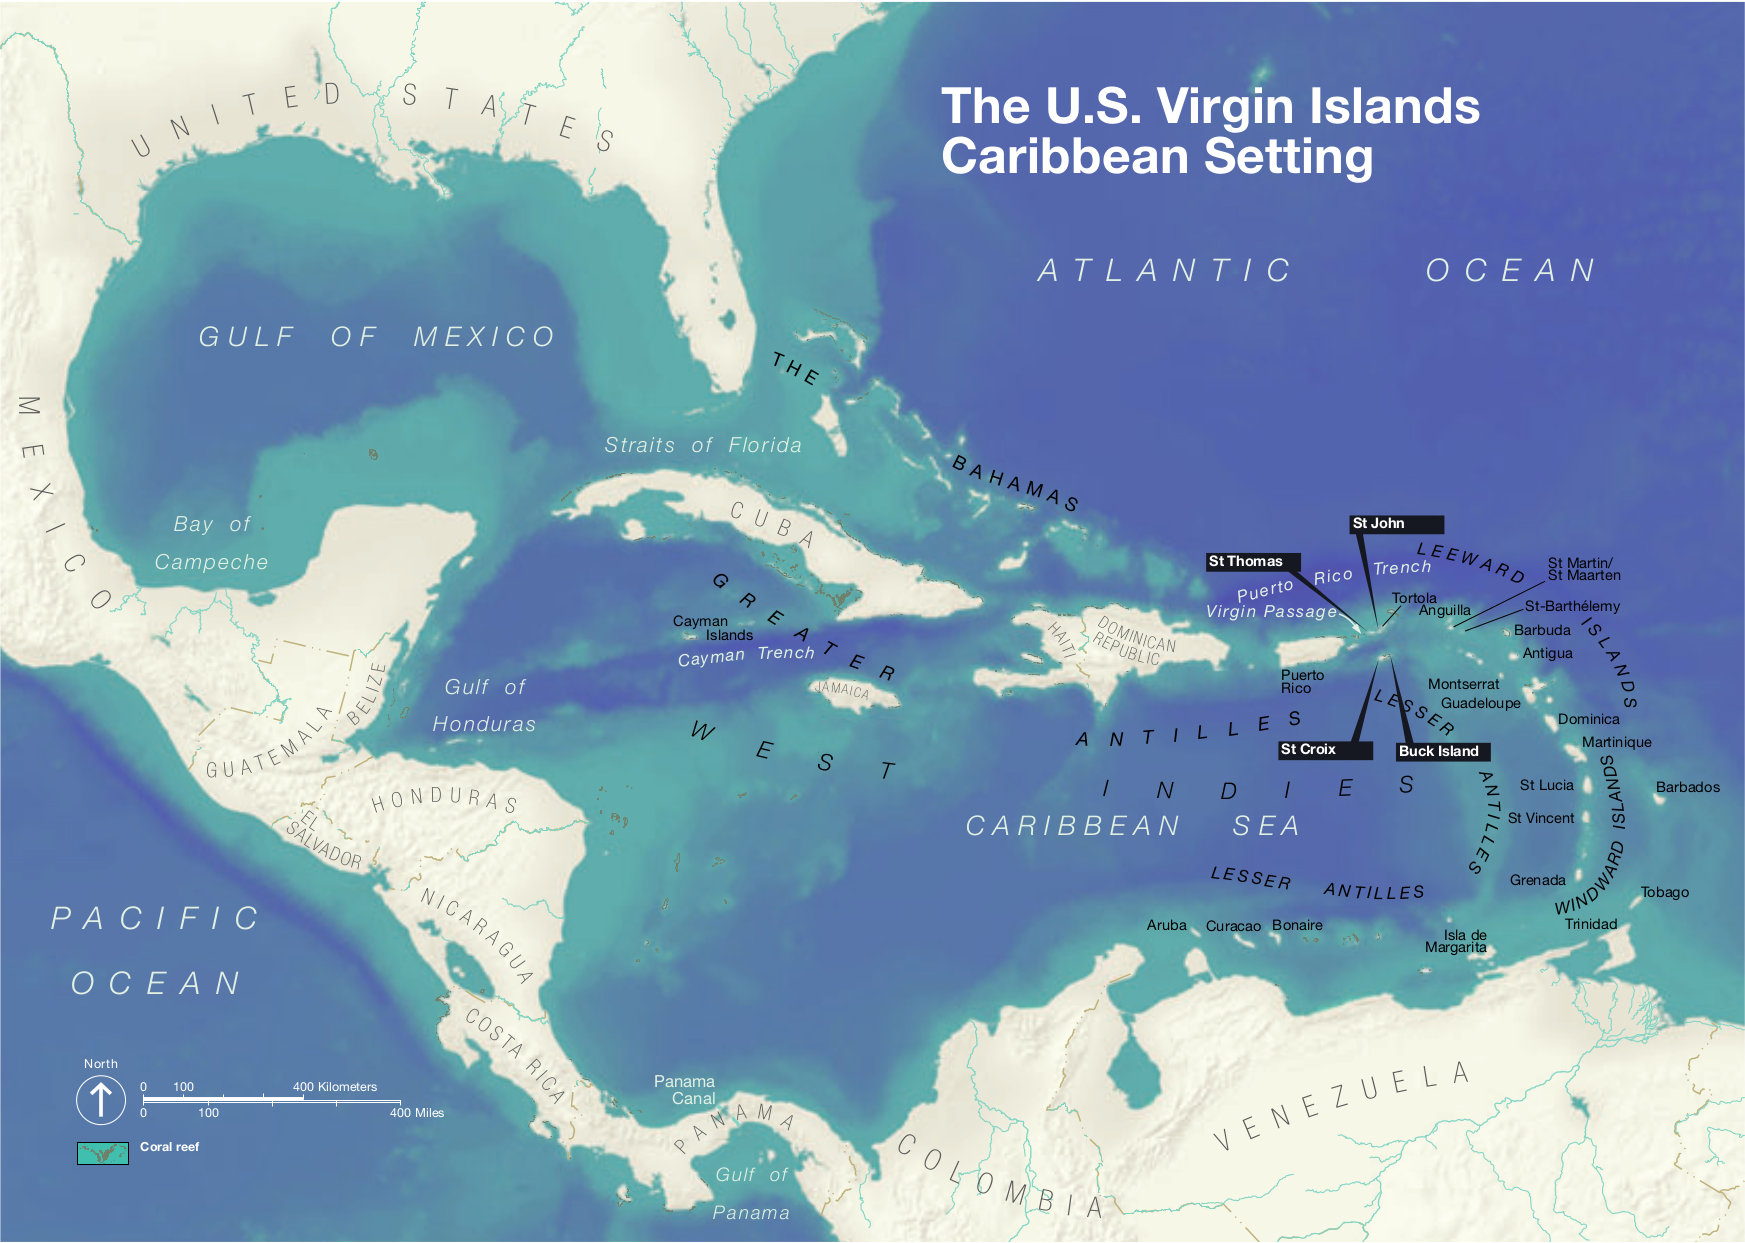 Virgin Islands Maps | NPMaps.com - just free maps, period.